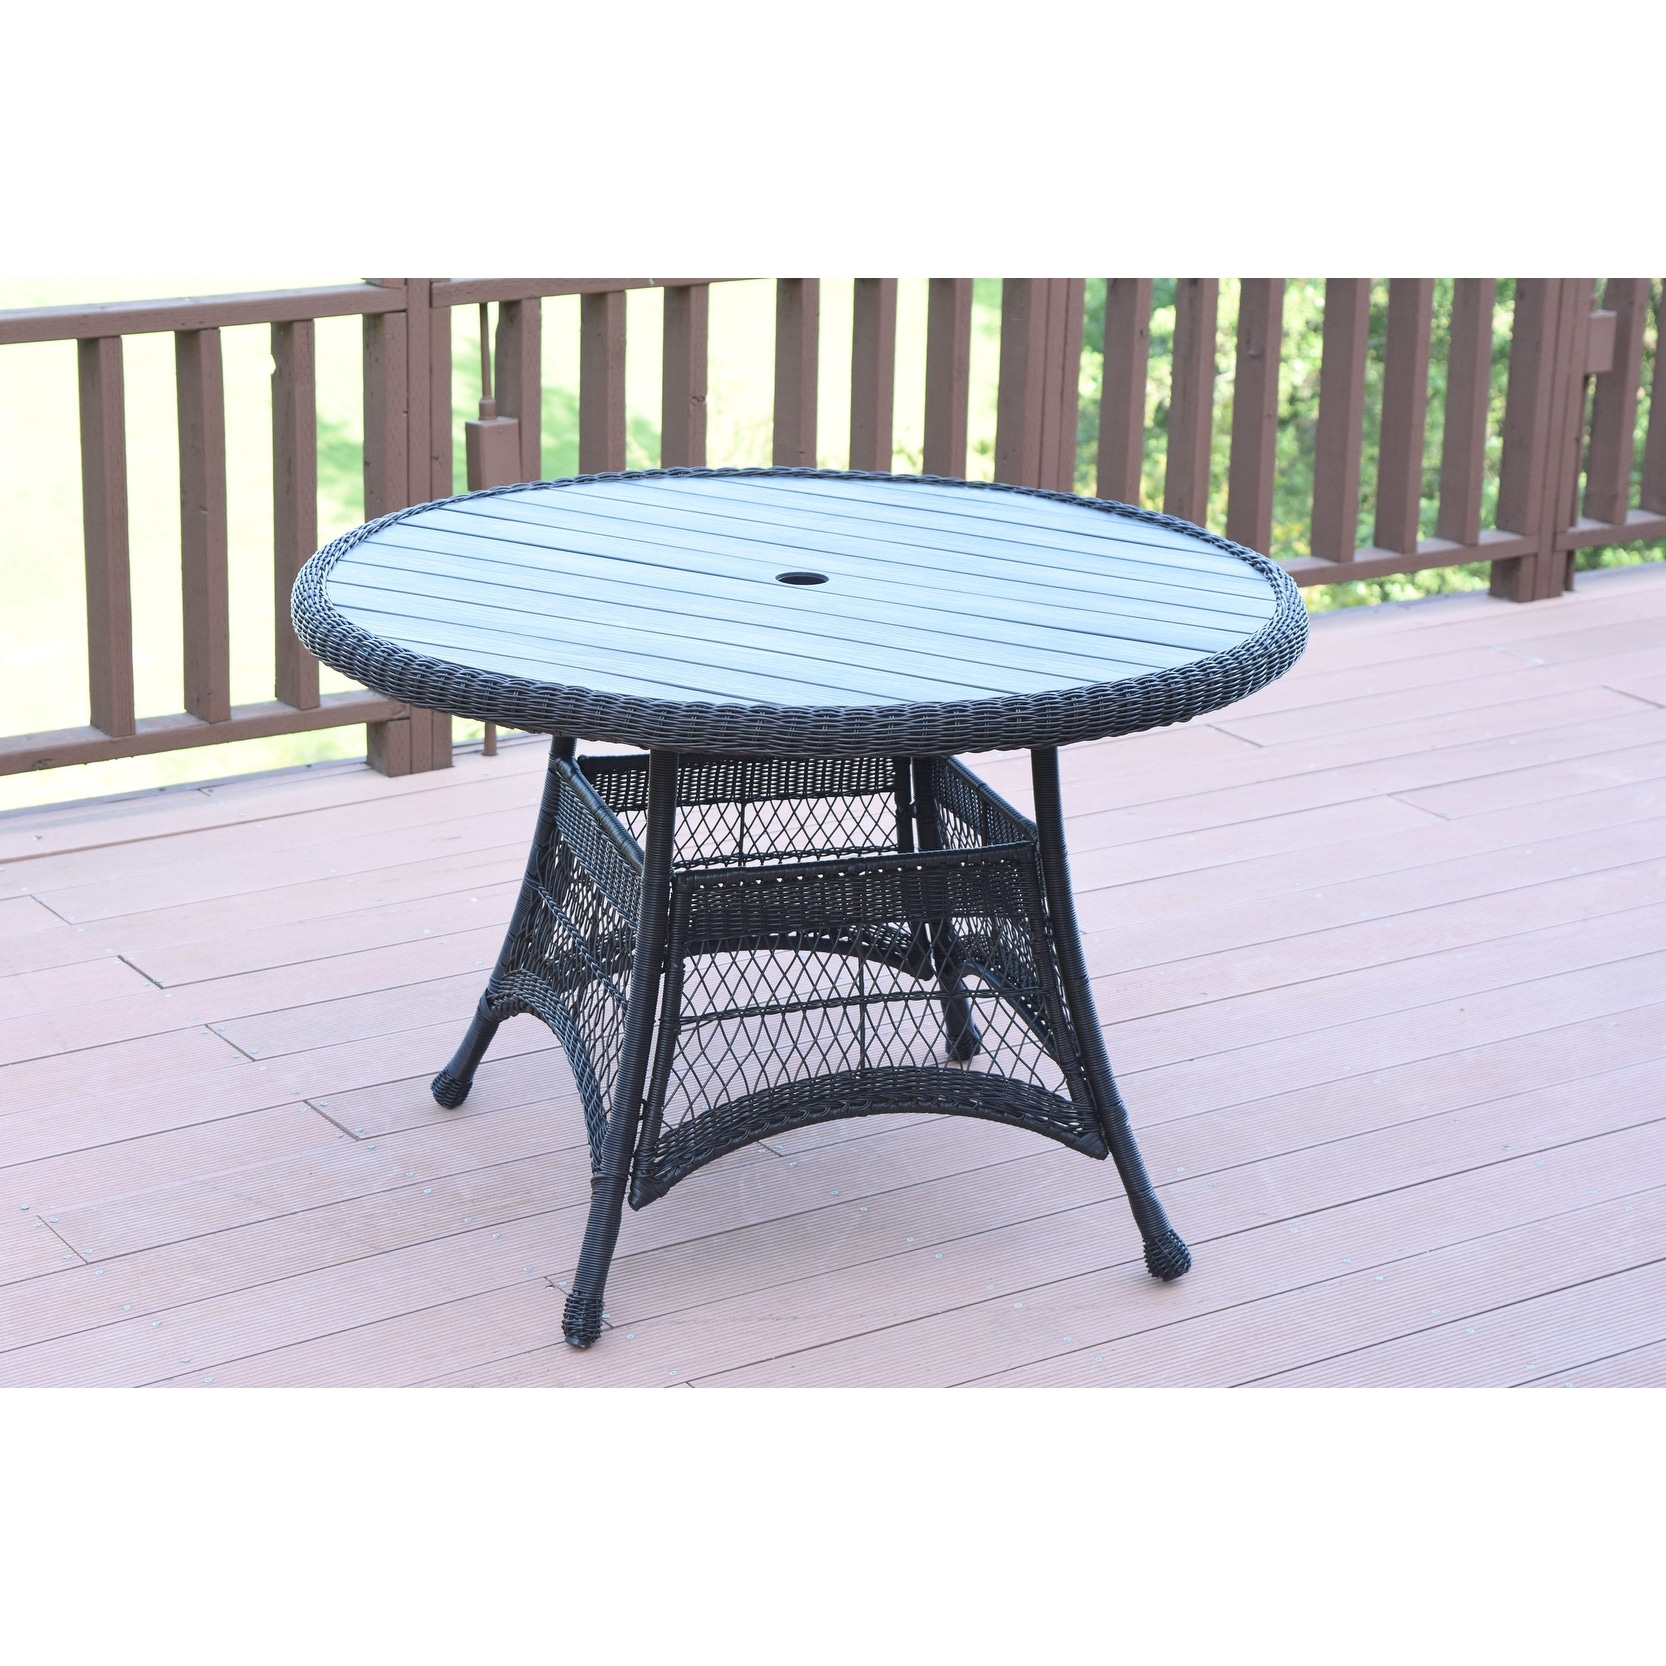 Black Wicker 44inch Round Dining Table With Faux Wood 44in Overstock 32074396